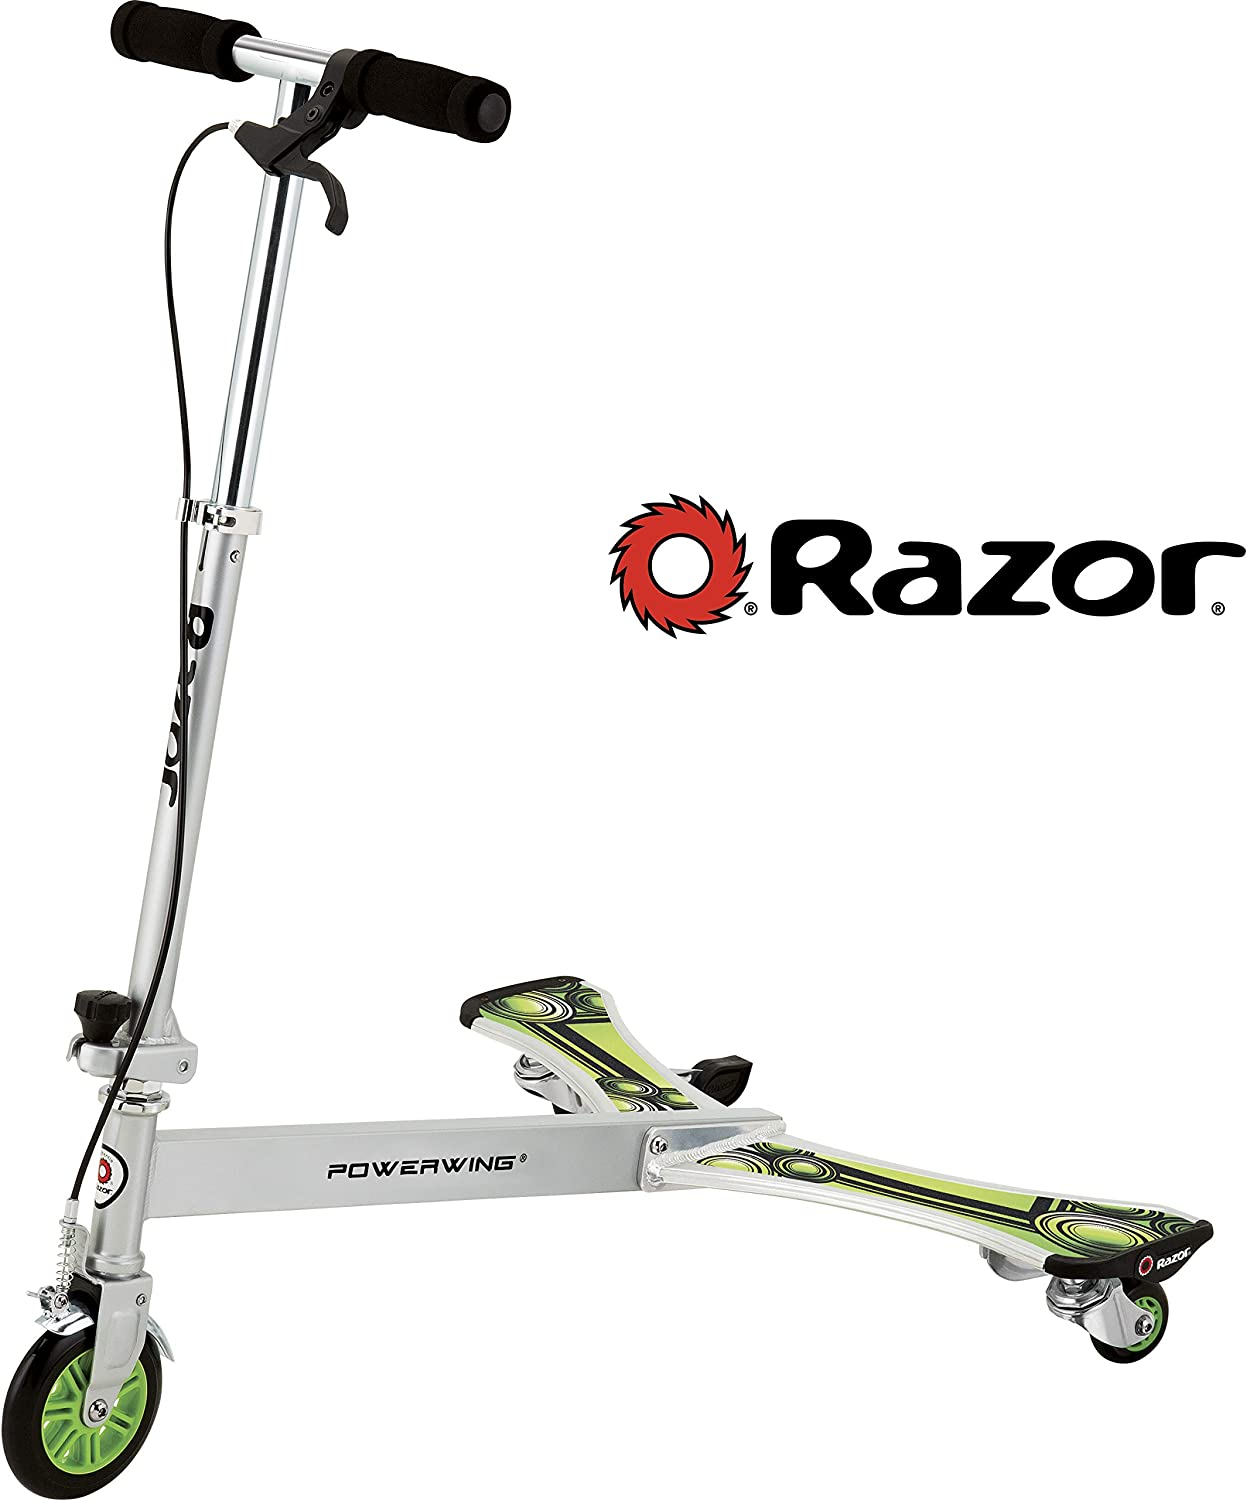 Razor PowerWing DLX Caster Scooter